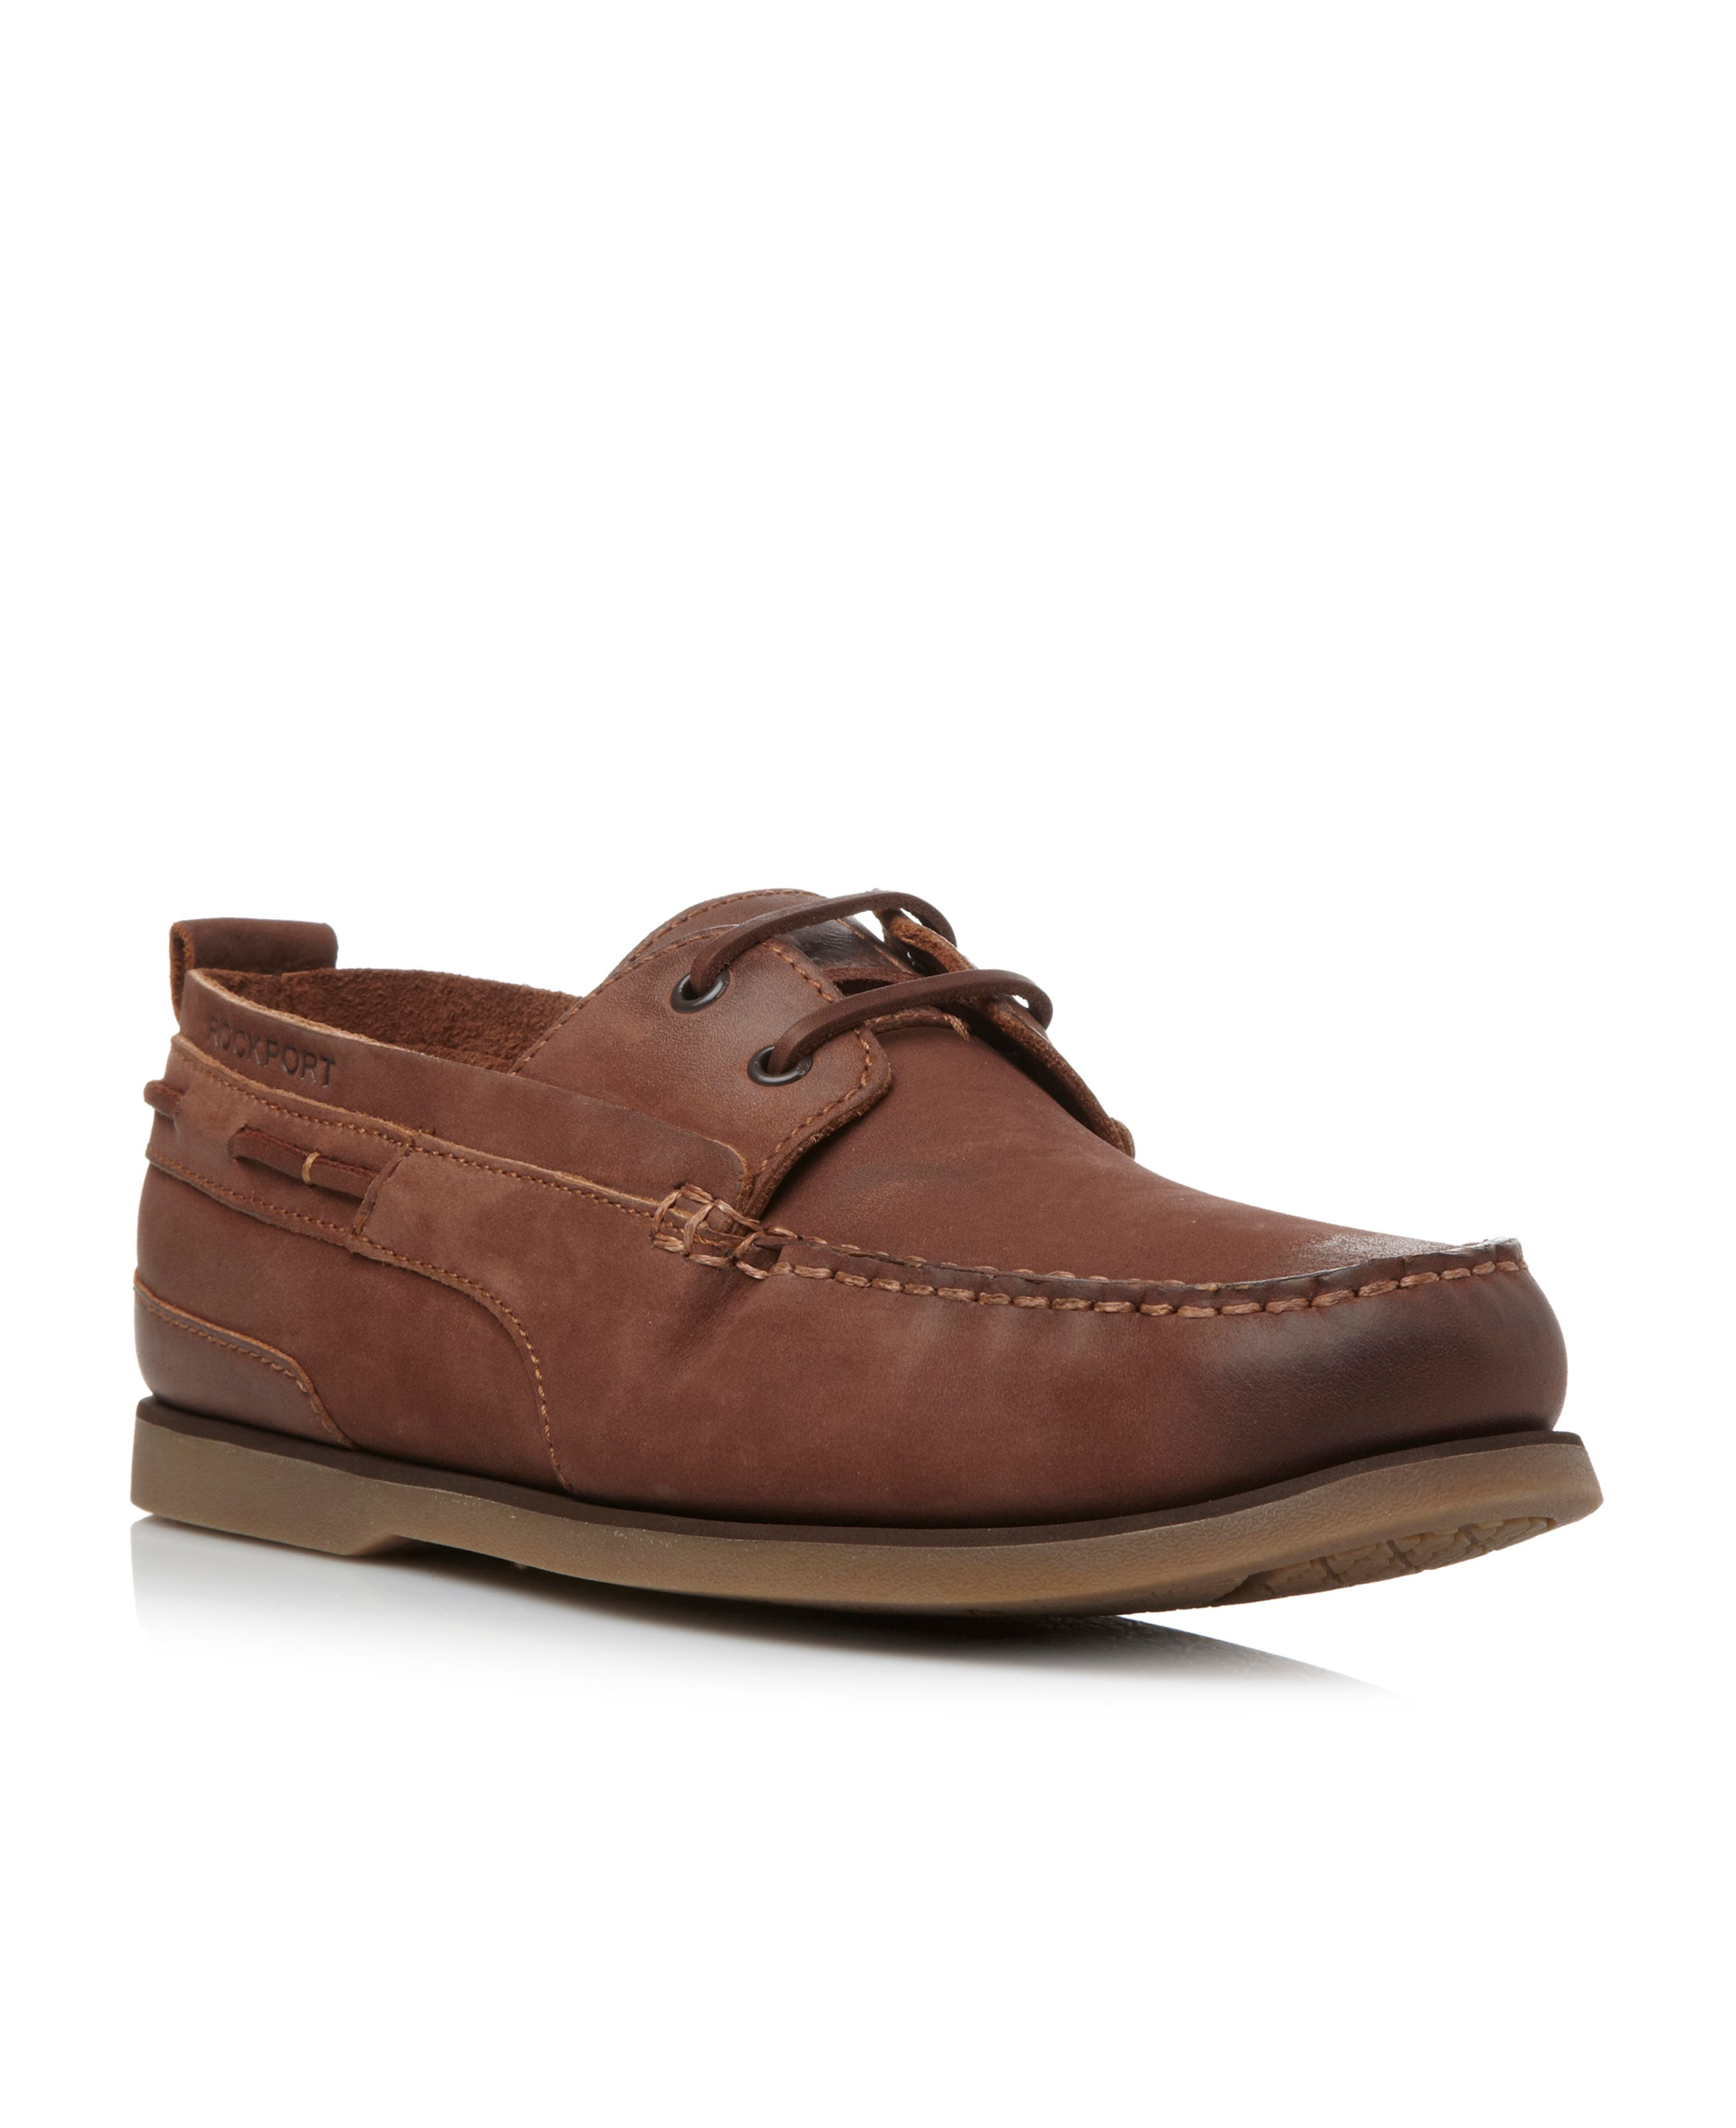 Coastal Springs 2 eye boat shoe